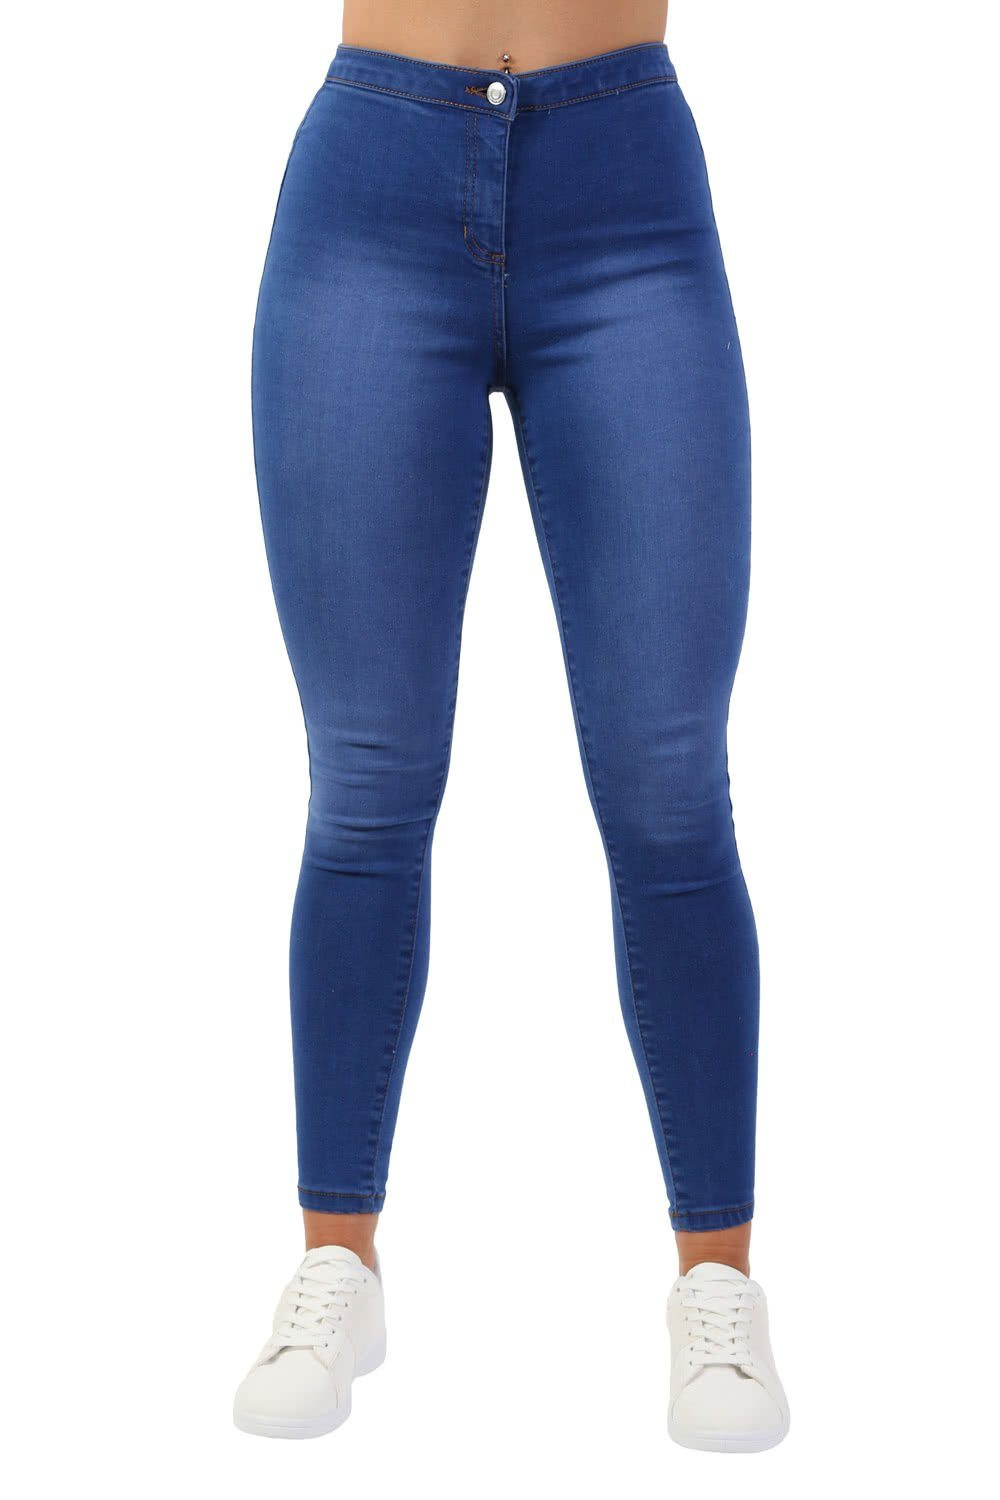 Jeans - High Waisted Stretch Denim Skinny Jeans In Denim